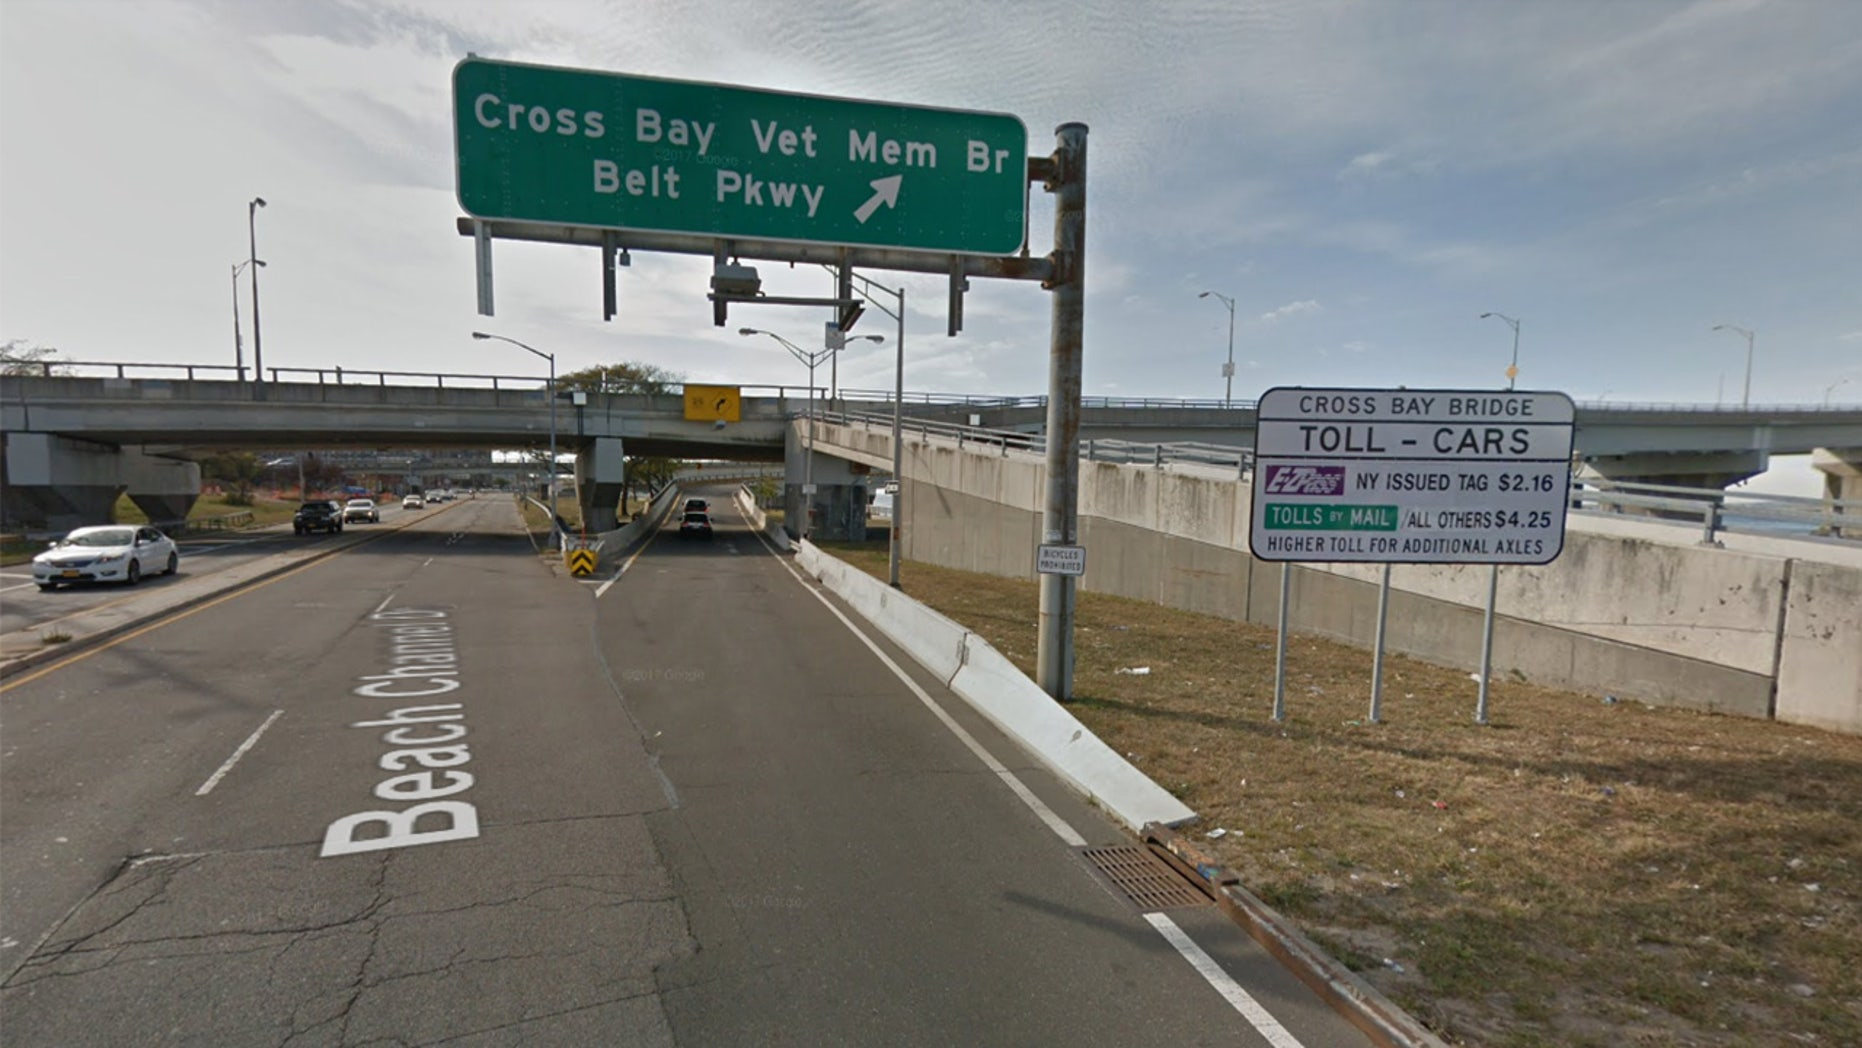 The entrance to the Cross Bay Bridge